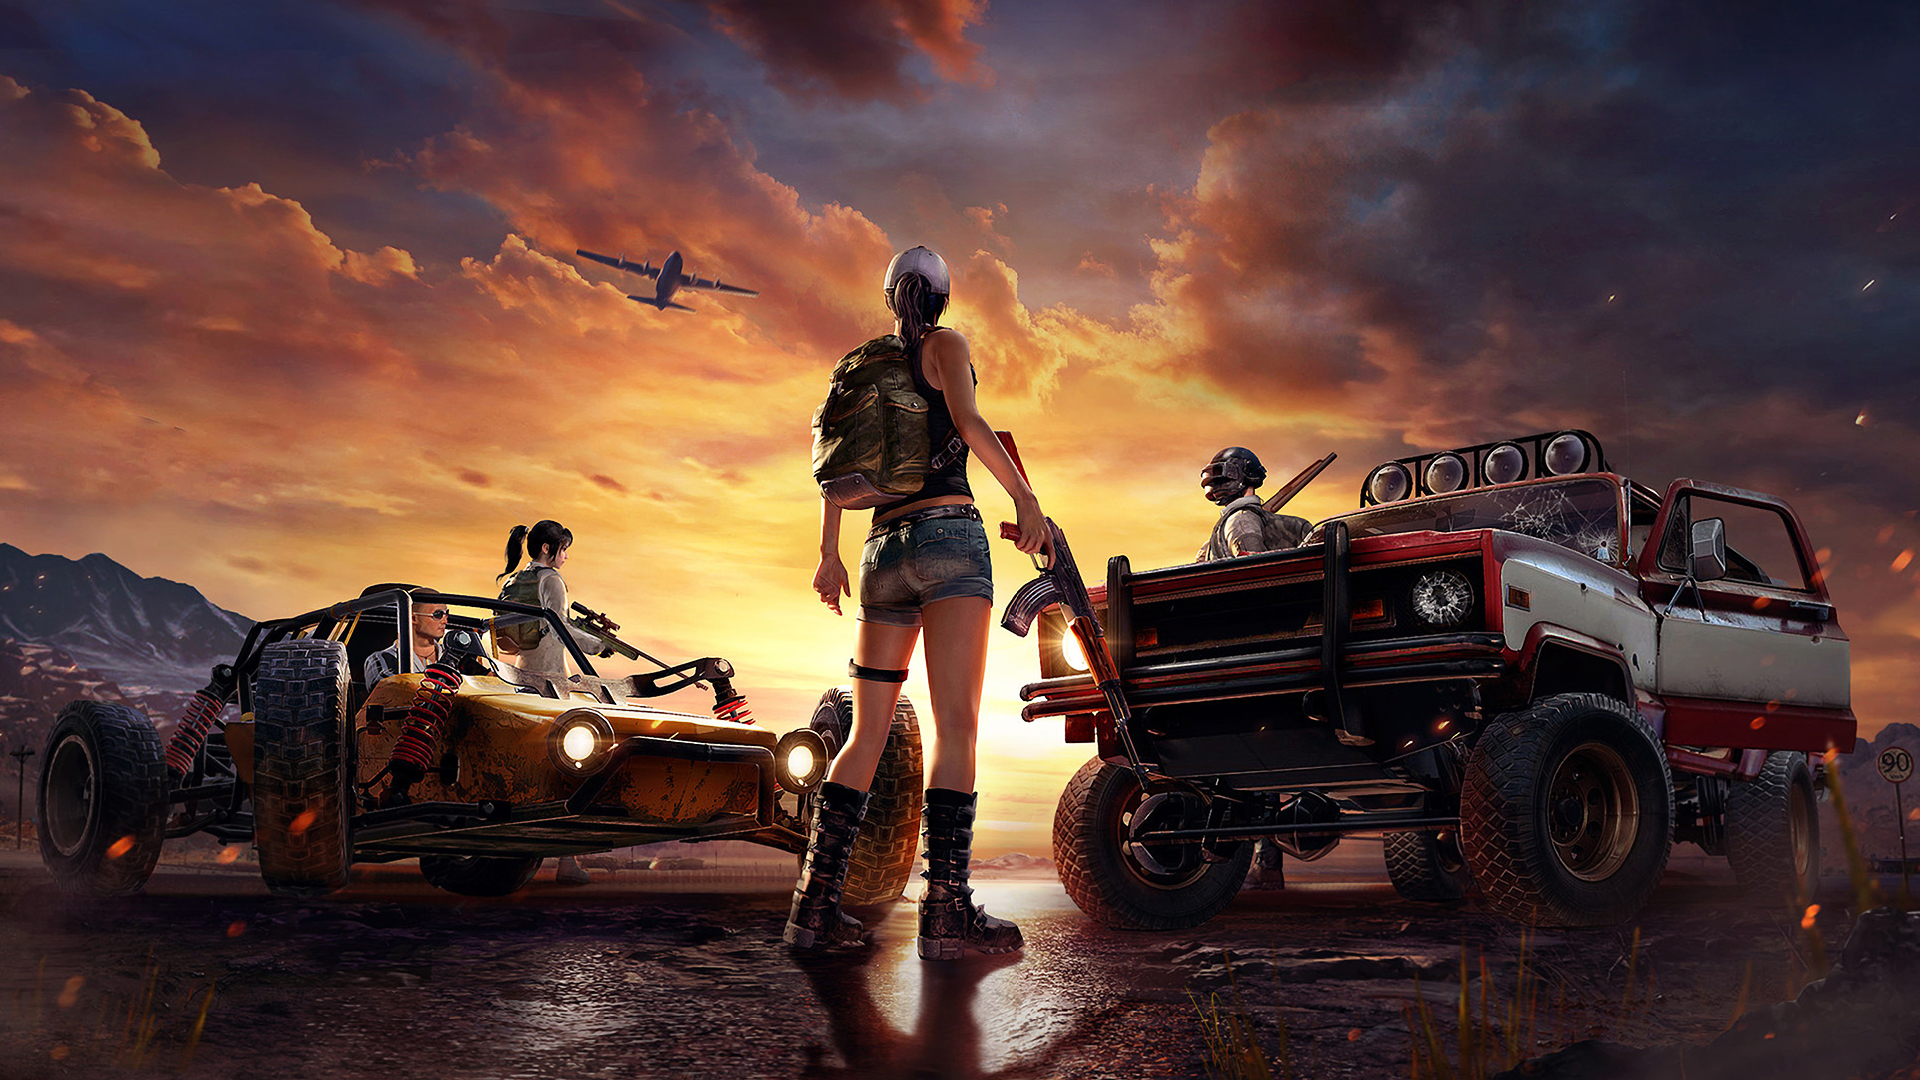 No Pubg Wallpaper: PlayerUnknown's Battlegrounds HD Wallpaper